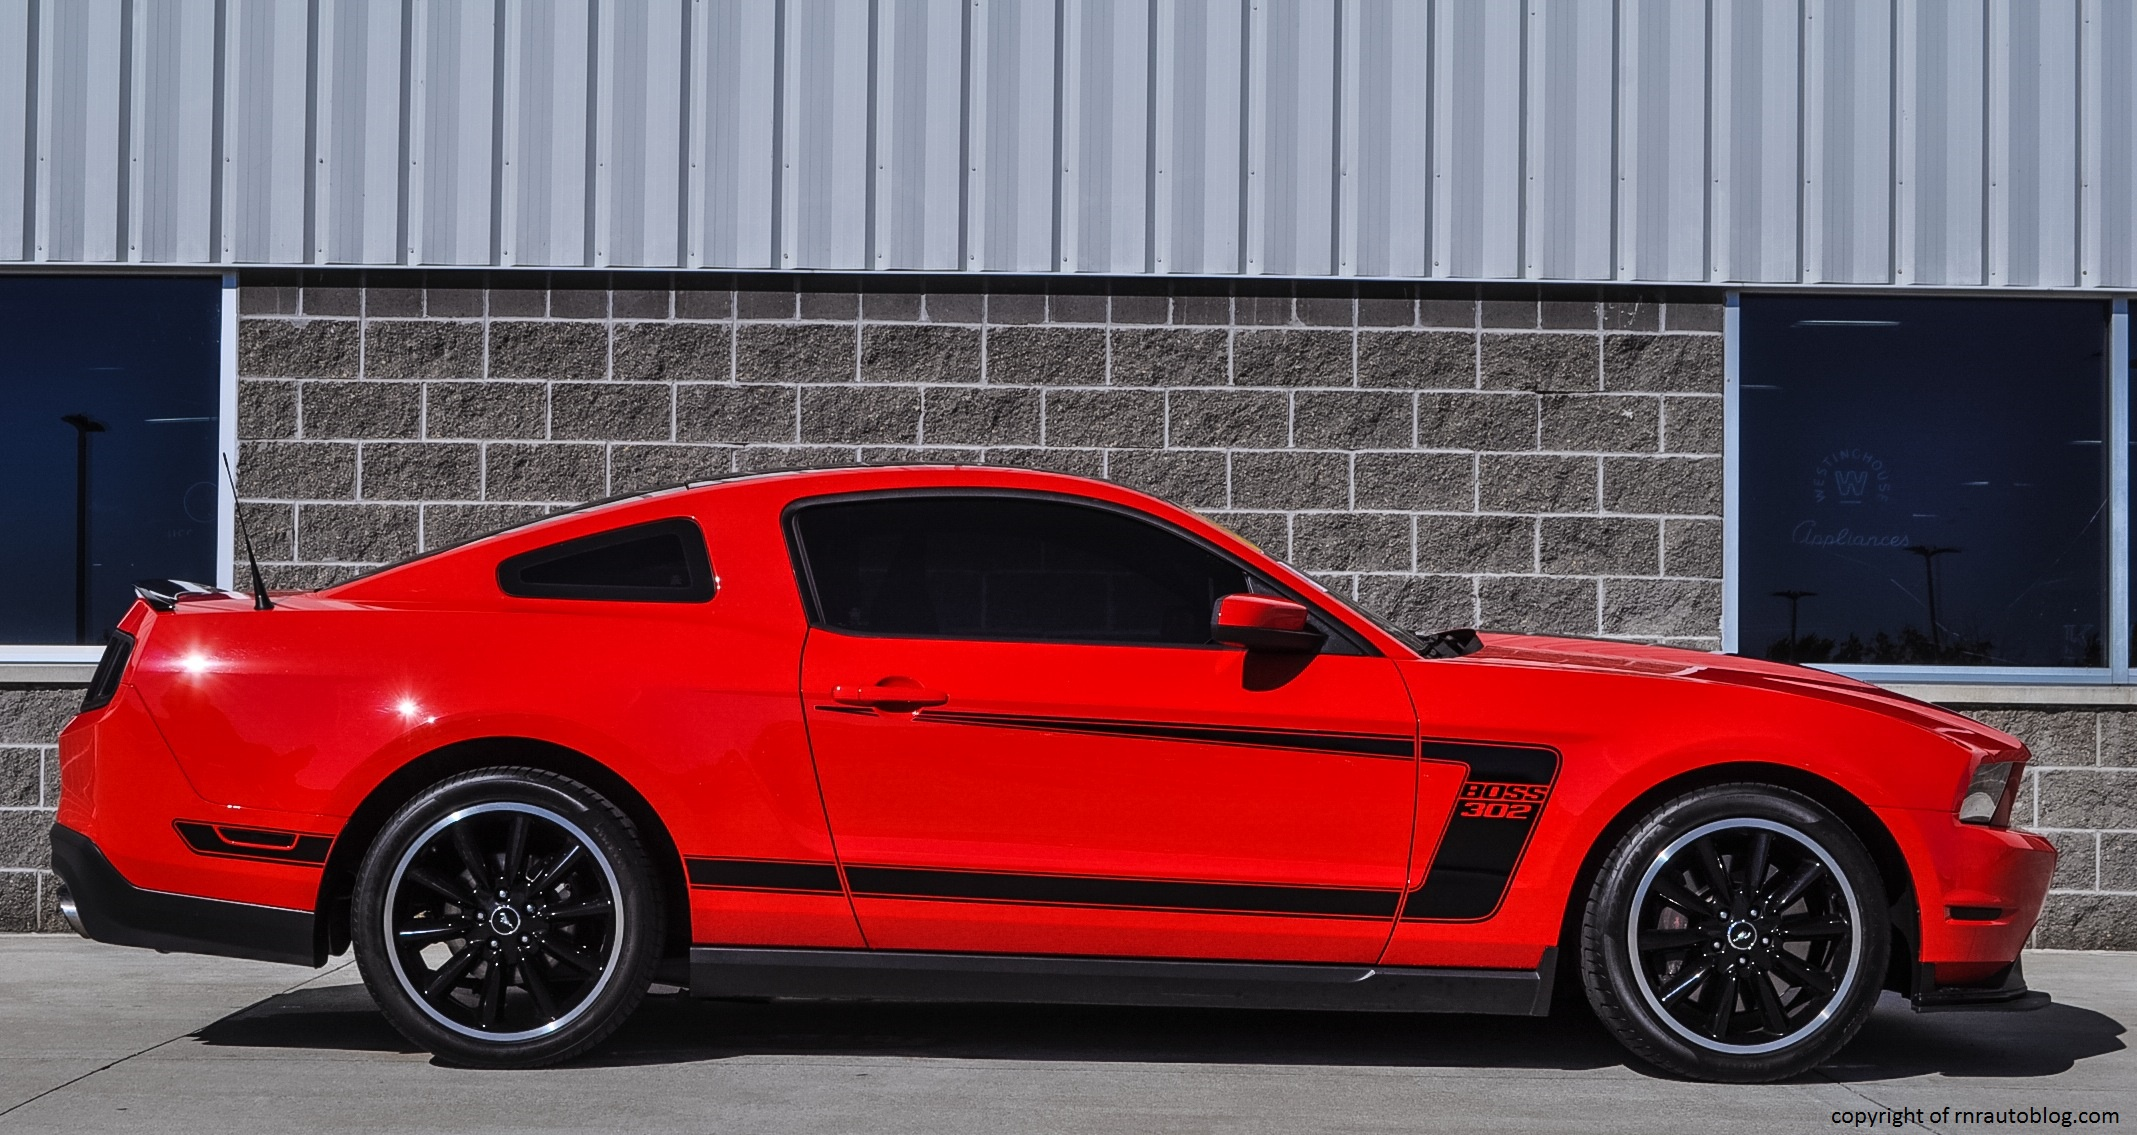 2012 Ford Mustang Gt Front Bumper >> 2012 Ford Mustang Boss 302 Review | RNR Automotive Blog